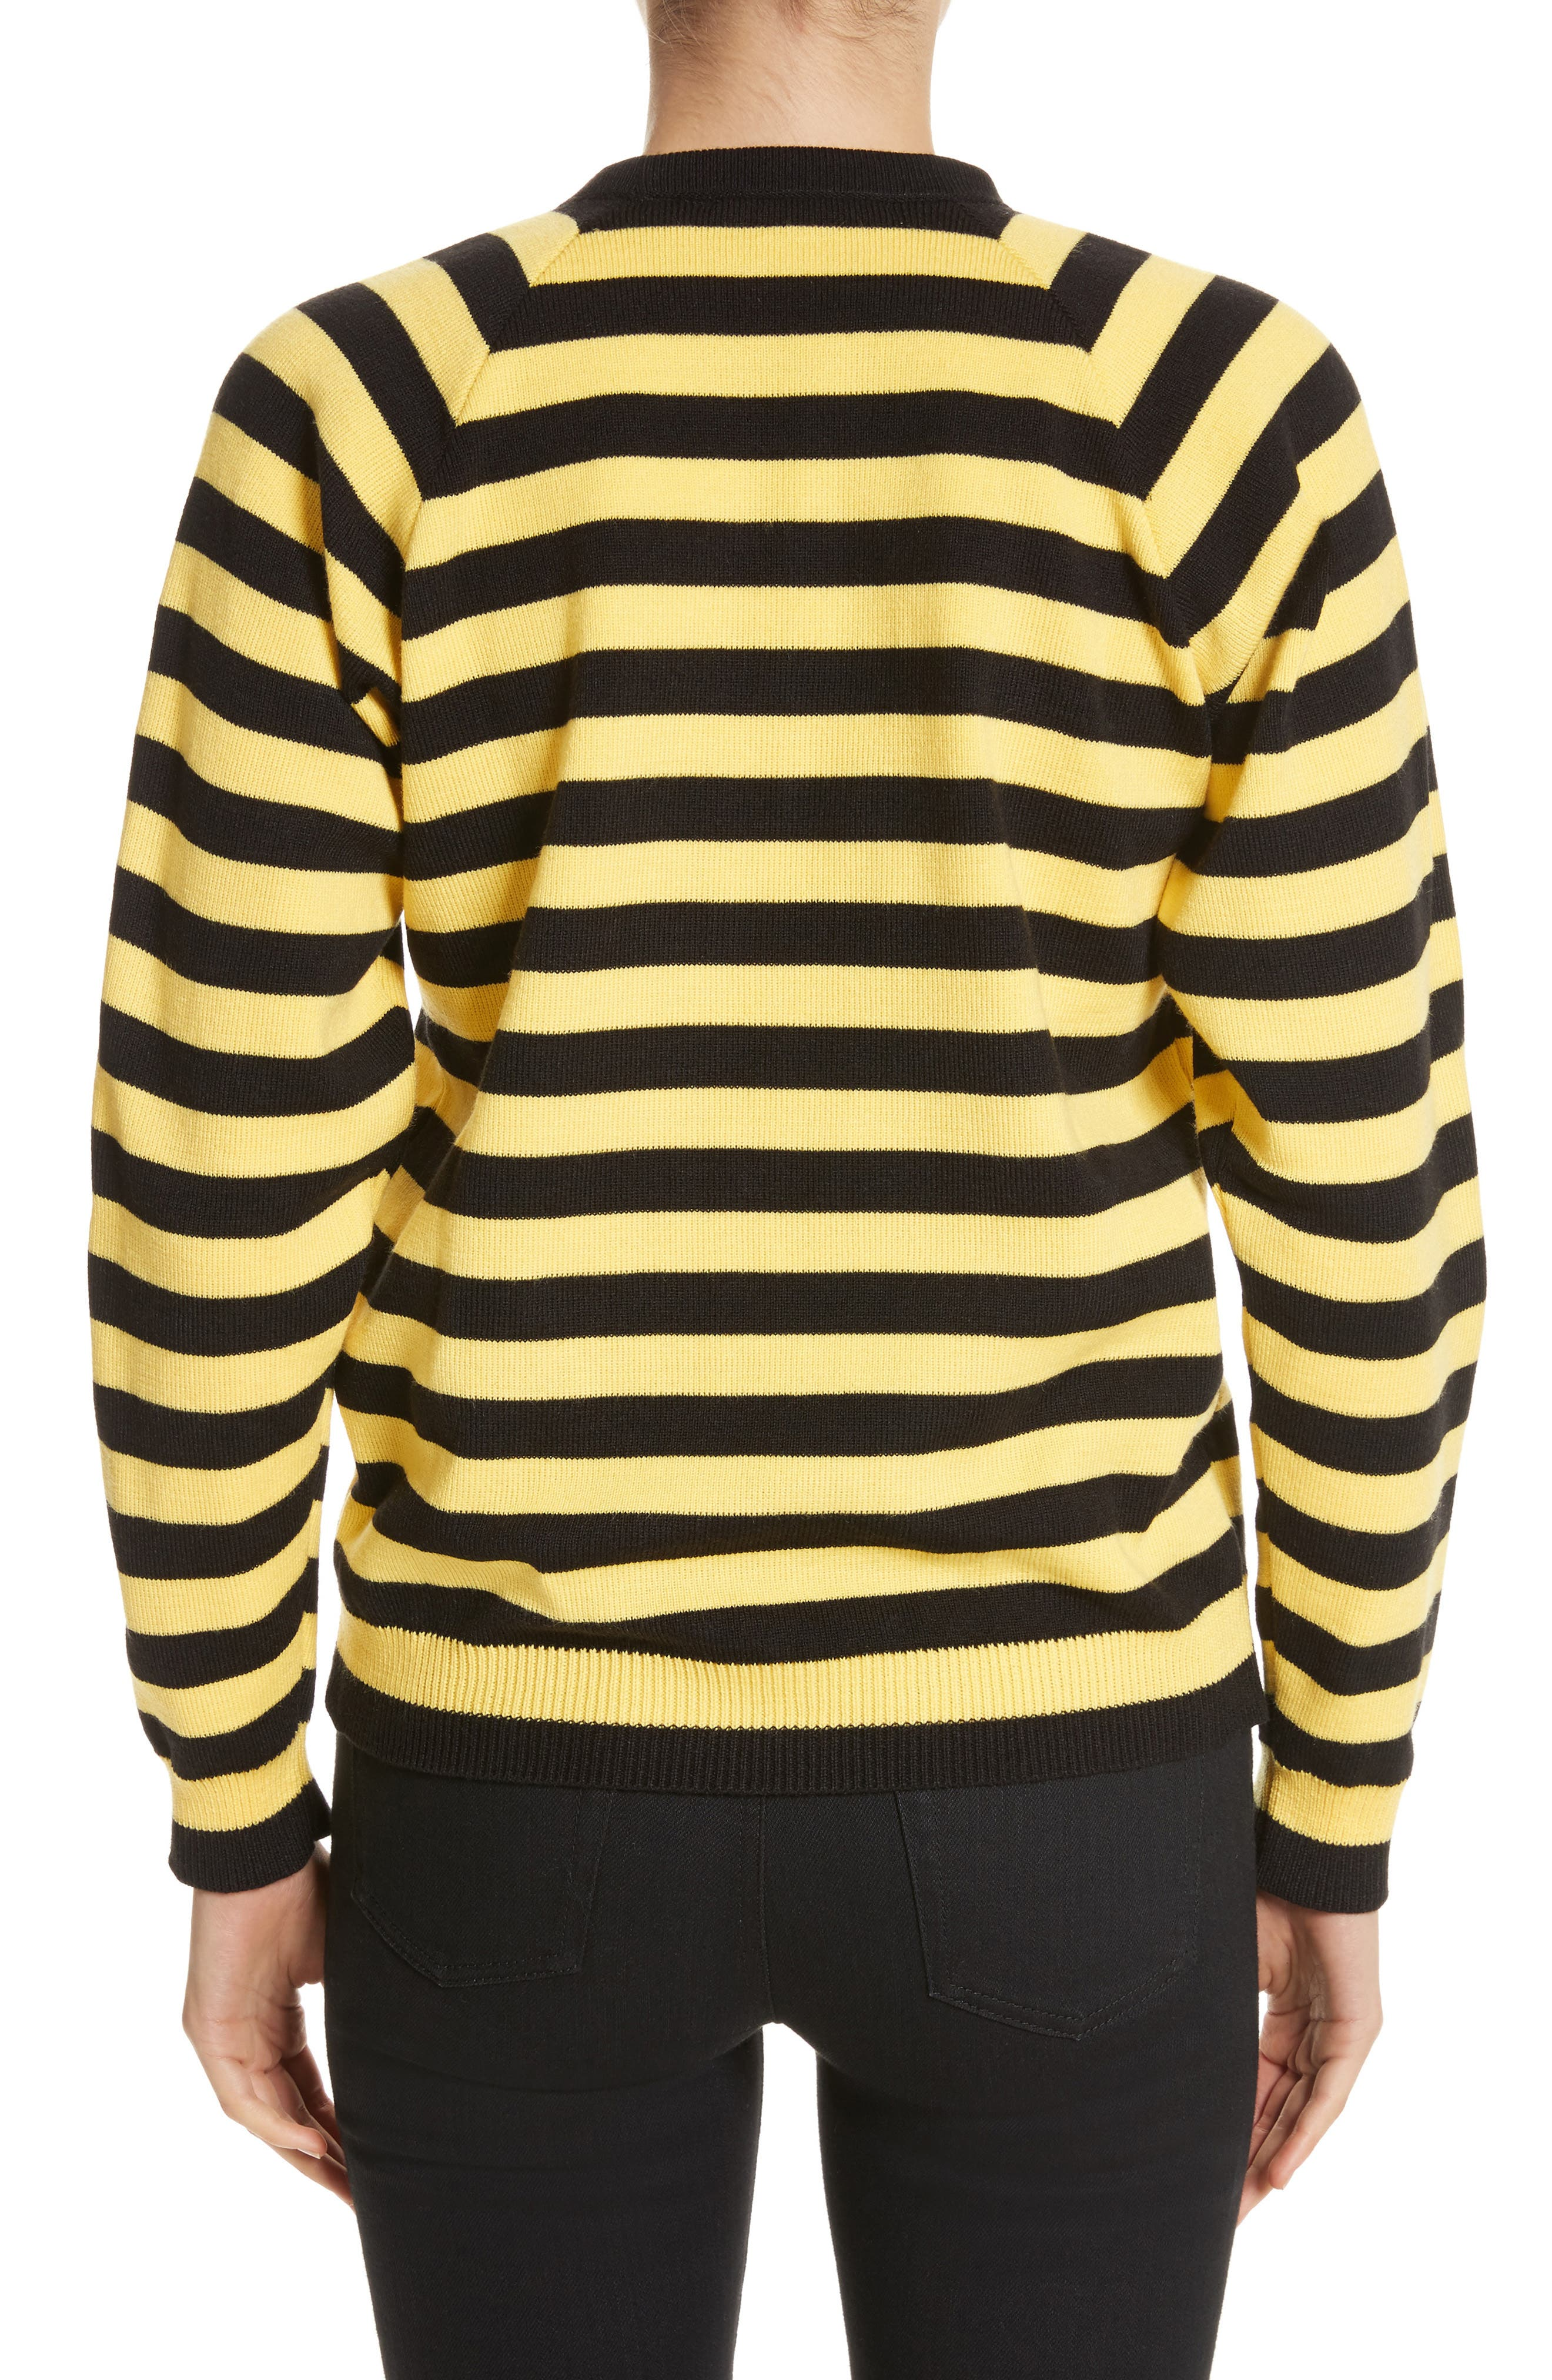 Bumblebee Stripe Sweater,                             Alternate thumbnail 2, color,                             750